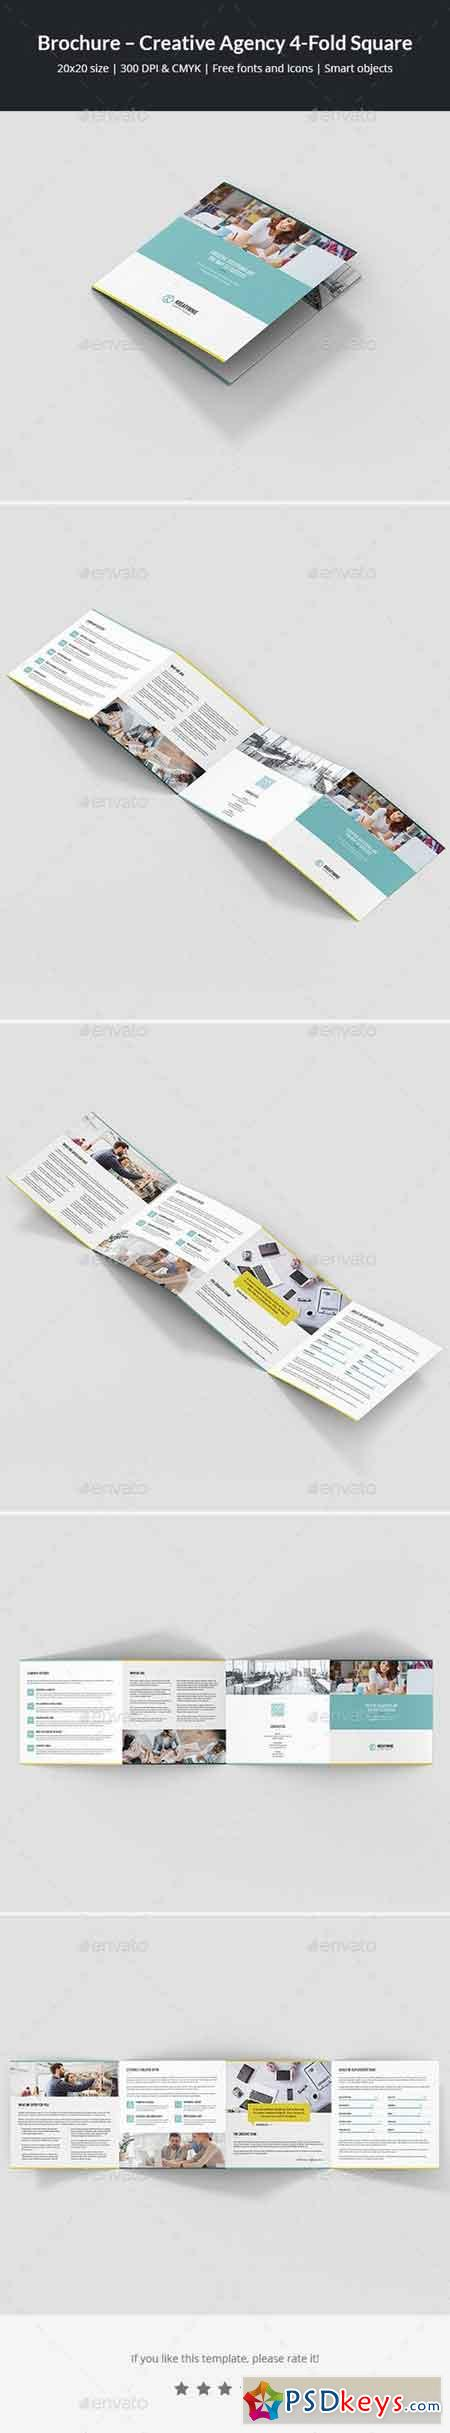 Brochure – Creative Agency 4-Fold Square 21317034